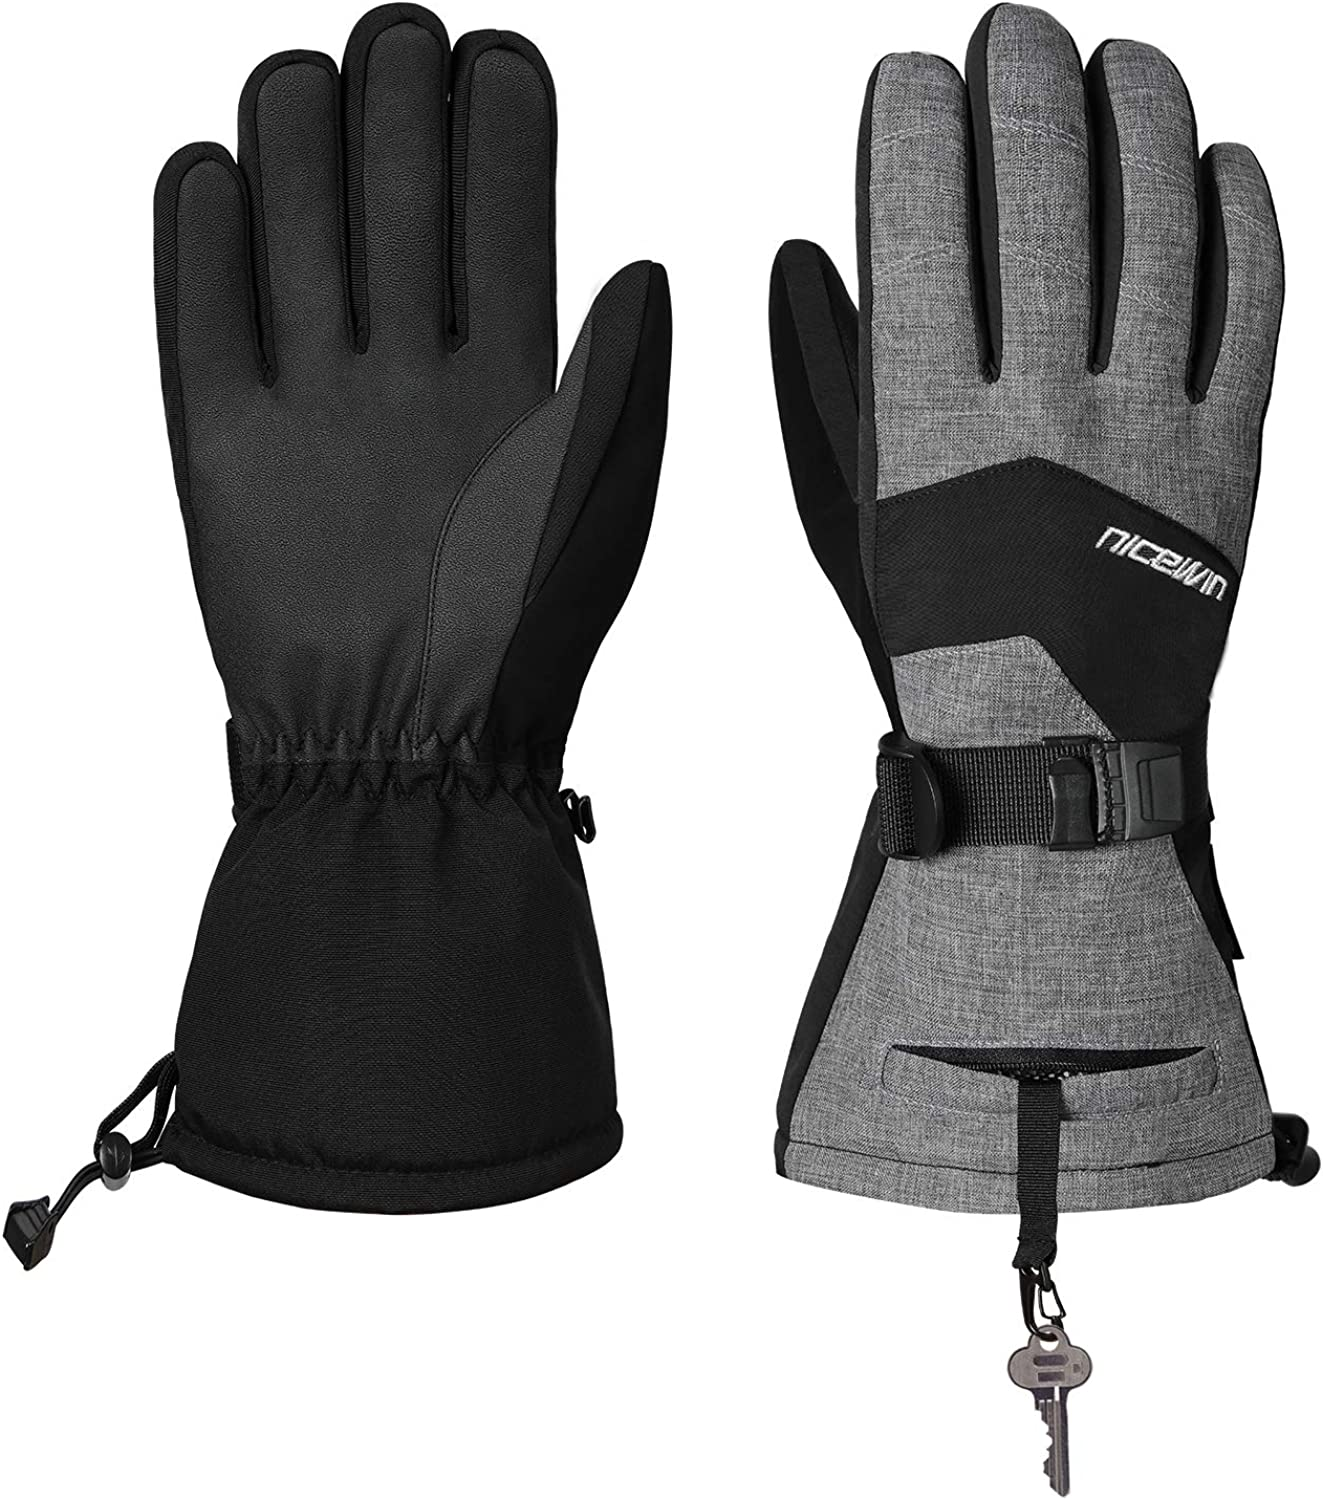 Cold Weather Warm Ski Gloves for Men Women Windproof Winter Gloves for Outdoor Sports Skiing Snowboarding Shovelling Snow S